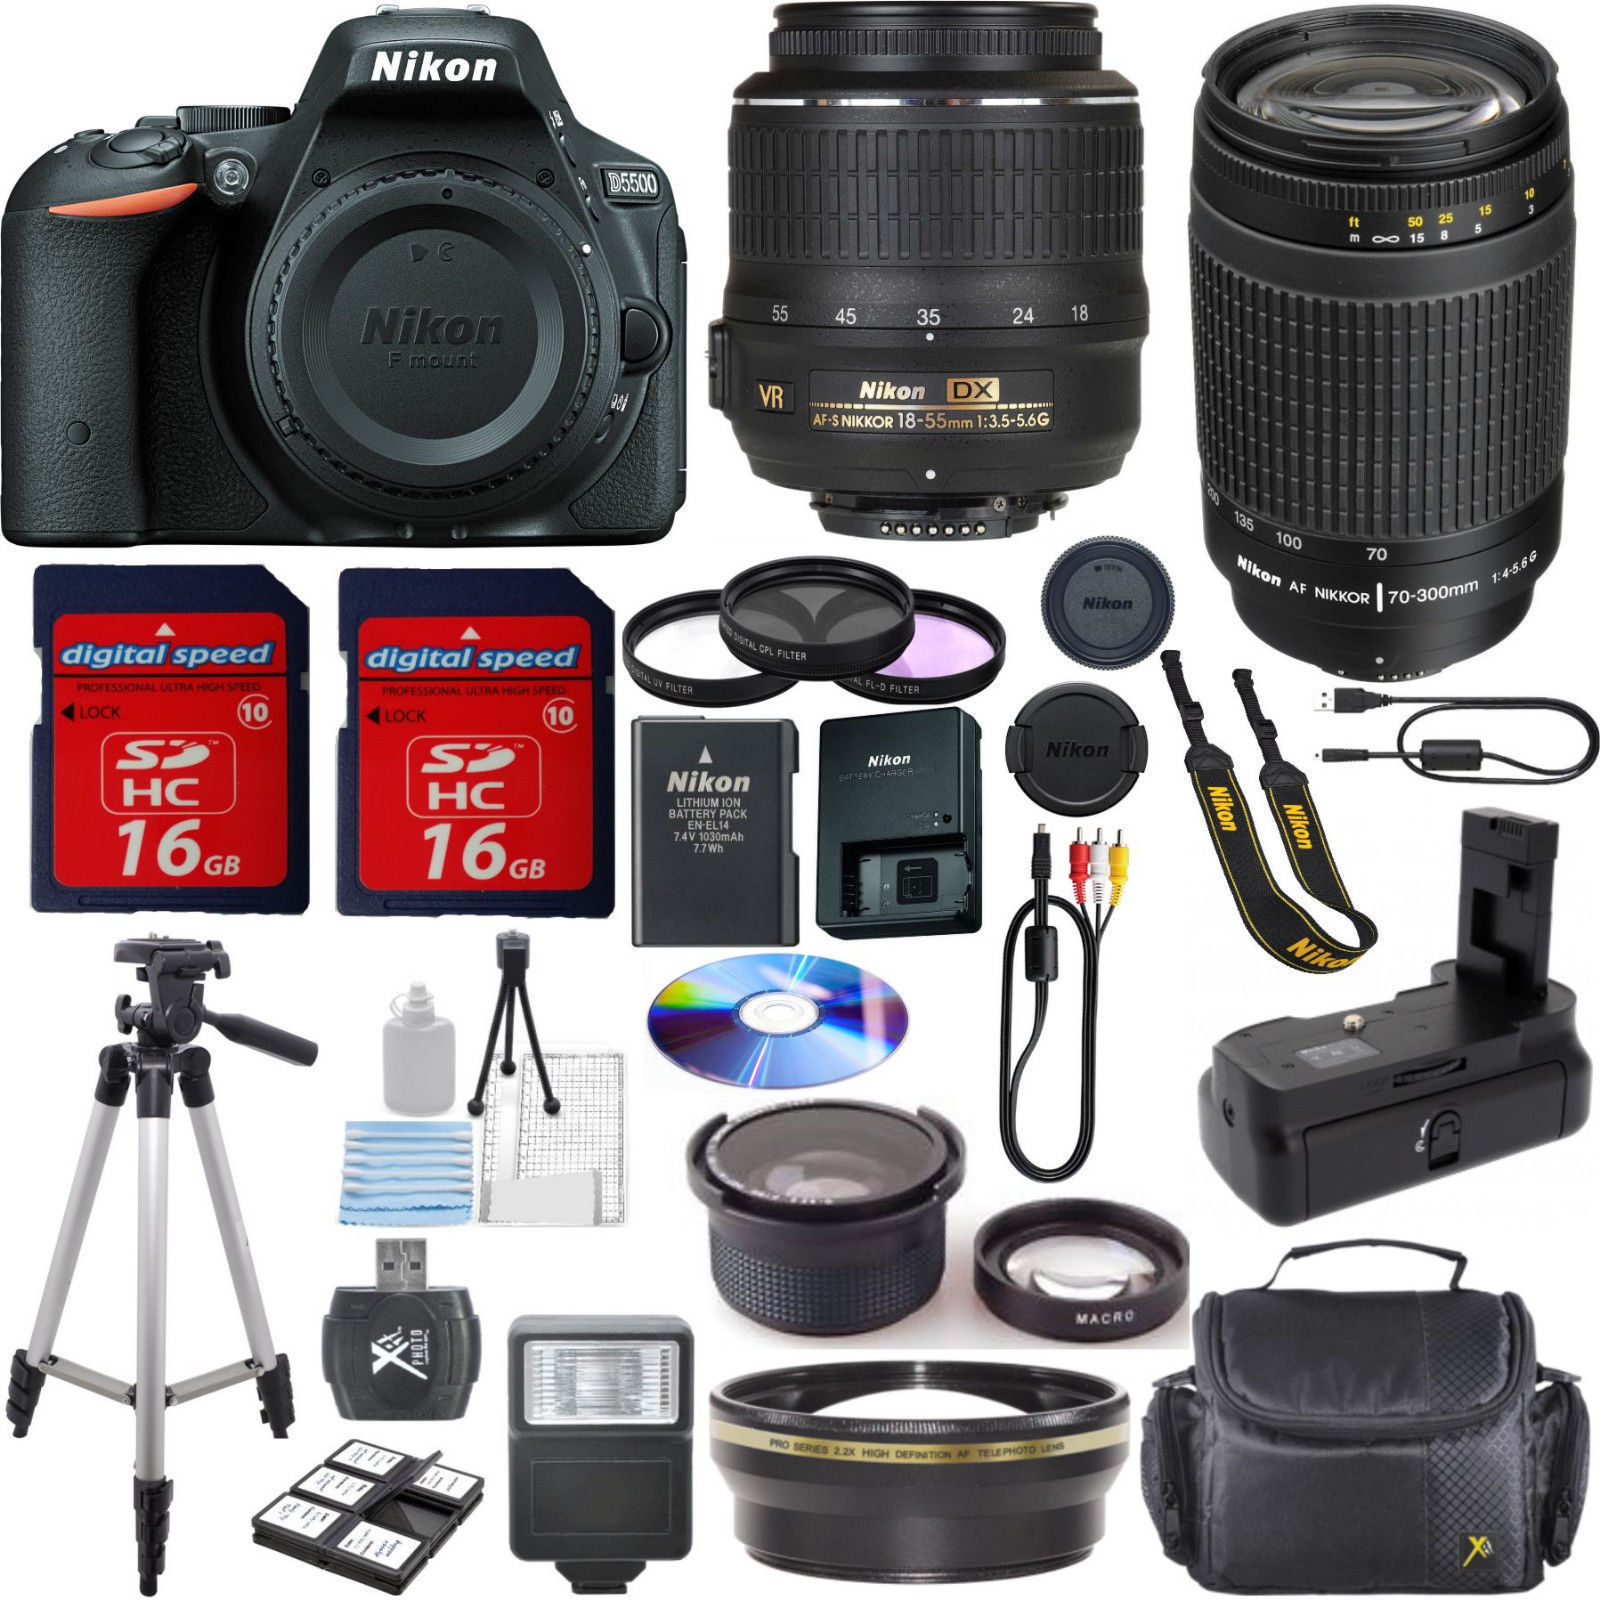 Nikon D5500 Bundle+18-55mm VR+70-300mm G+Power Battery Grip+32GB Kit+++EXTRAS! for sale  USA